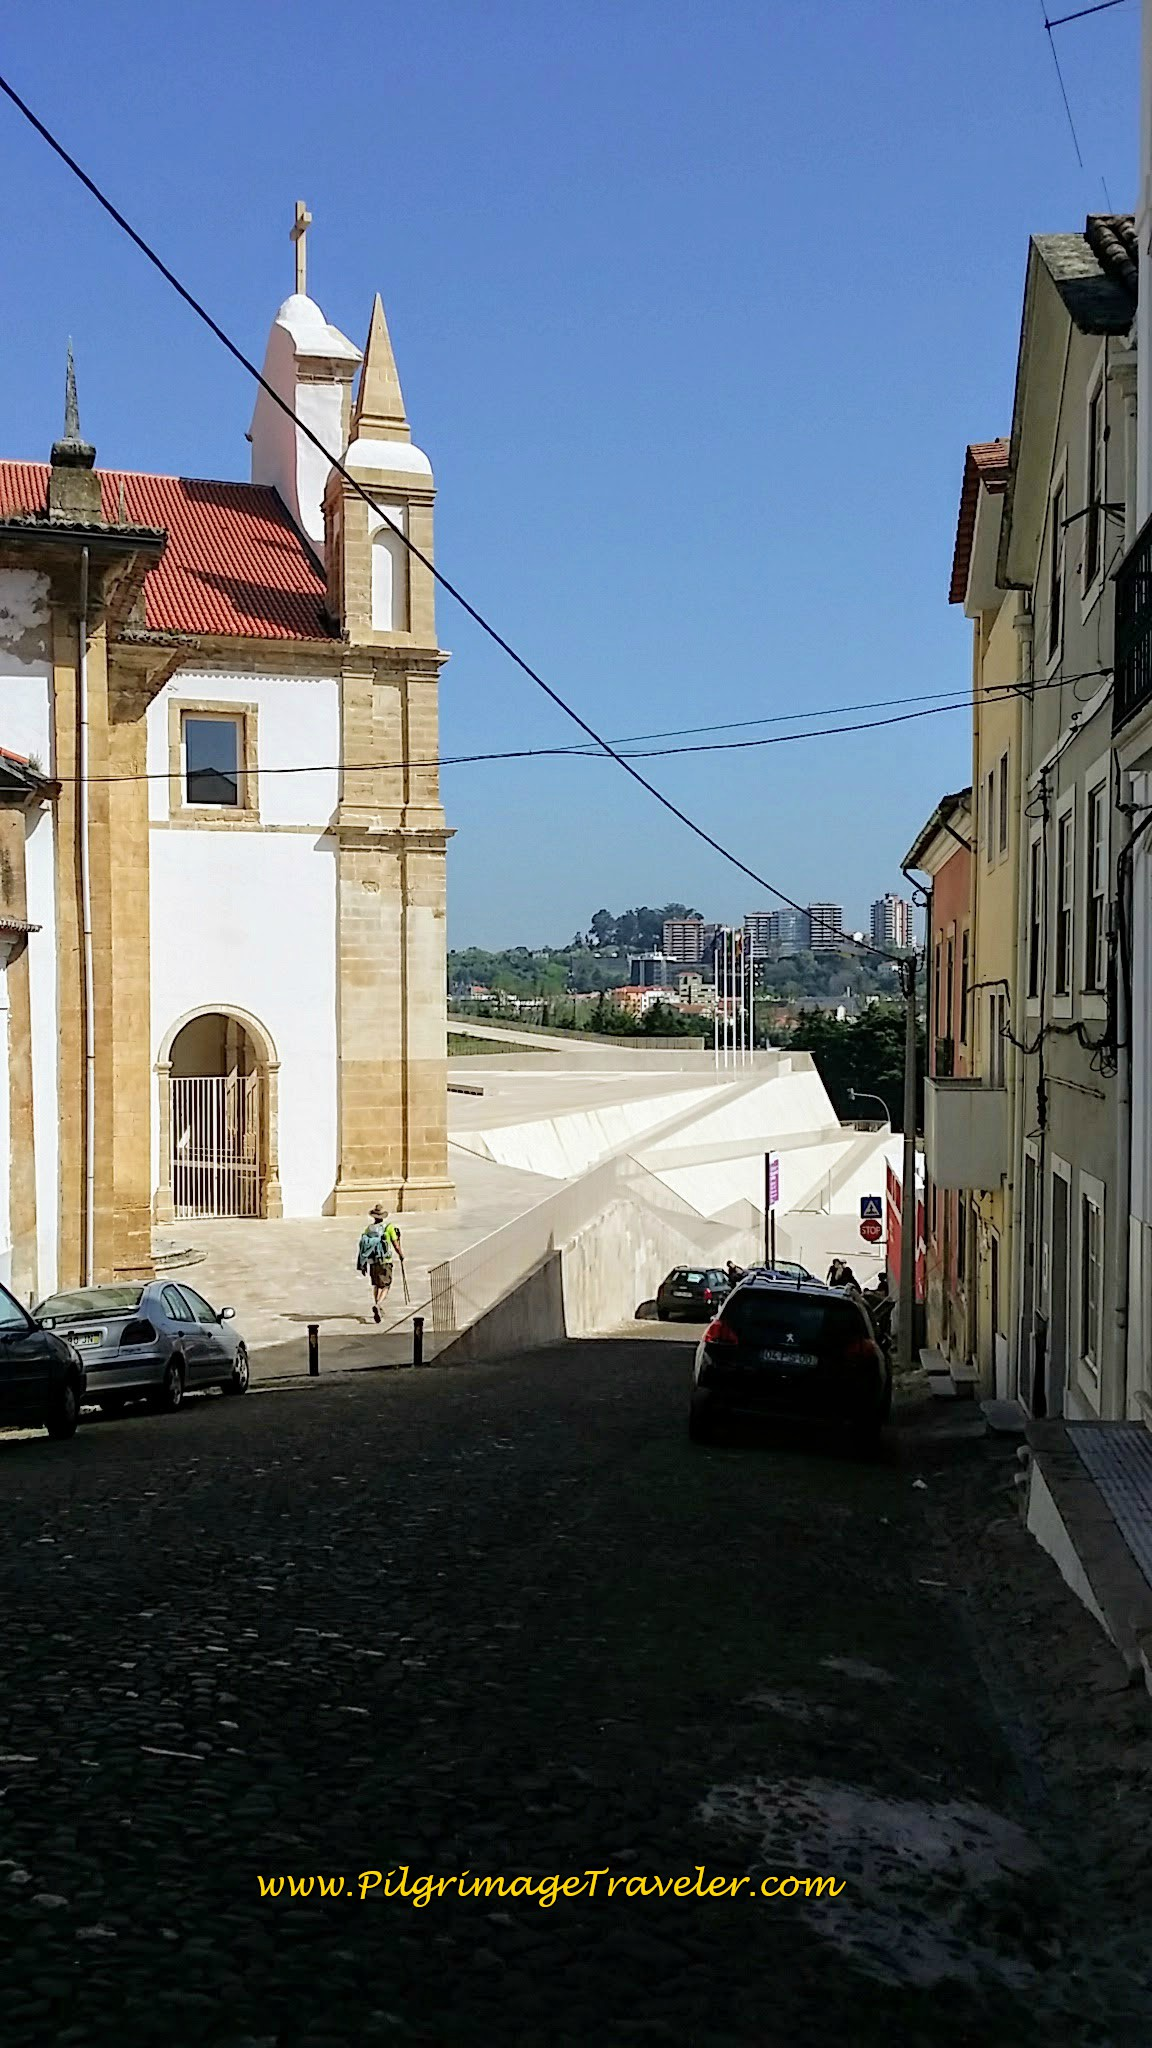 Approaching the Convento São Francisco, Coimbra, Portugal